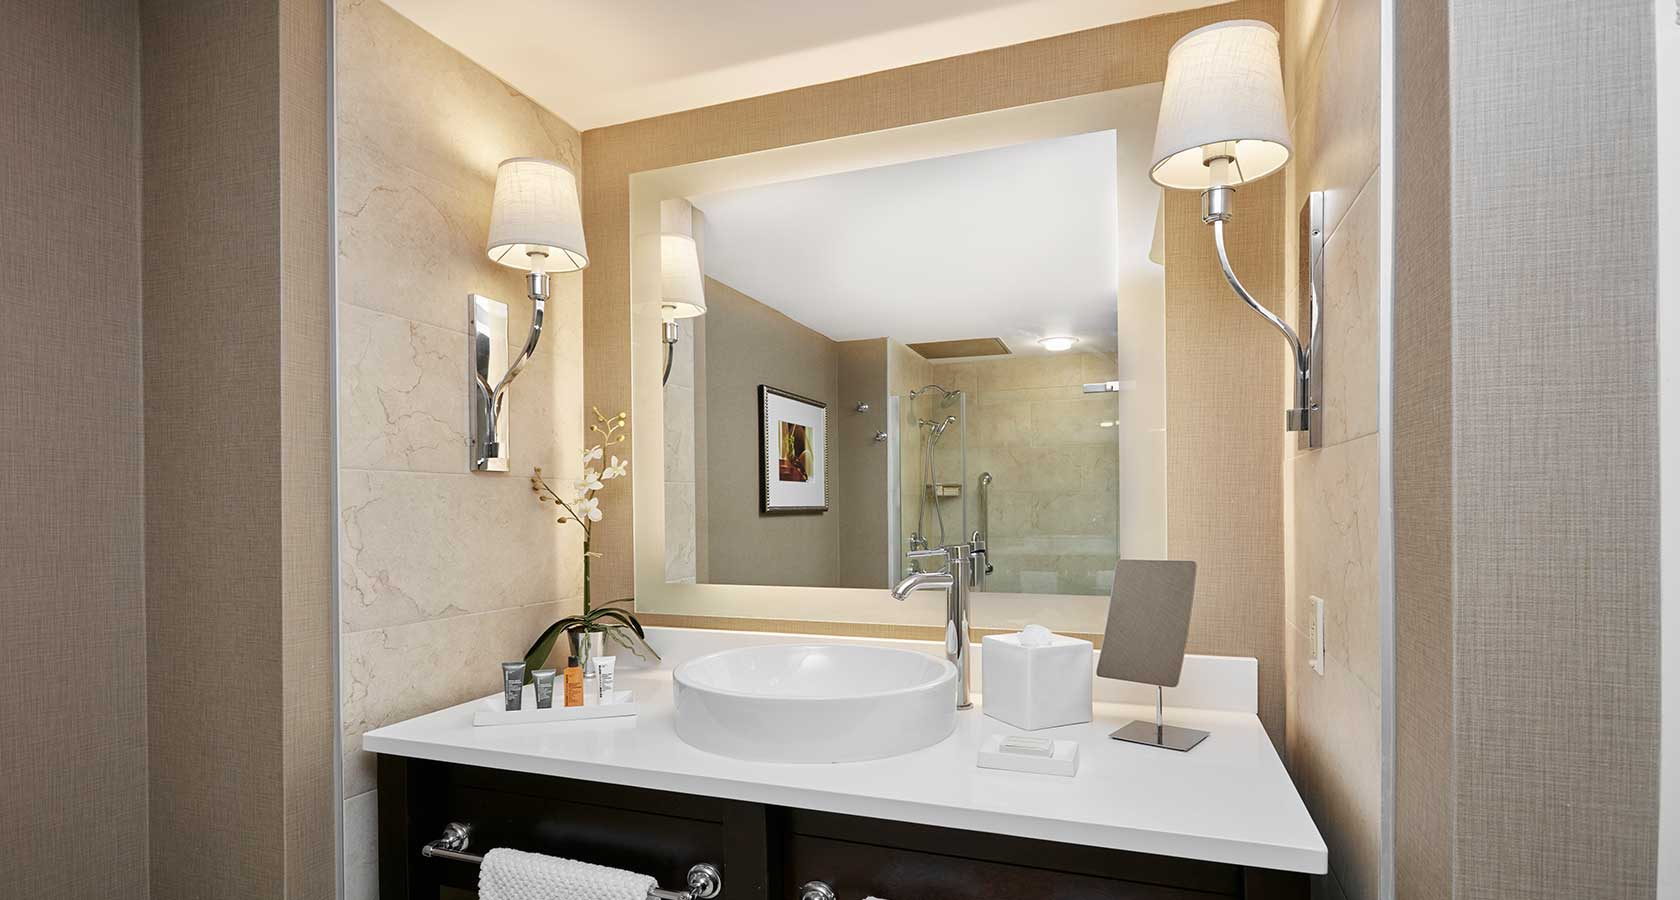 Newly renovated bathroom with a glass enclosed stall shower